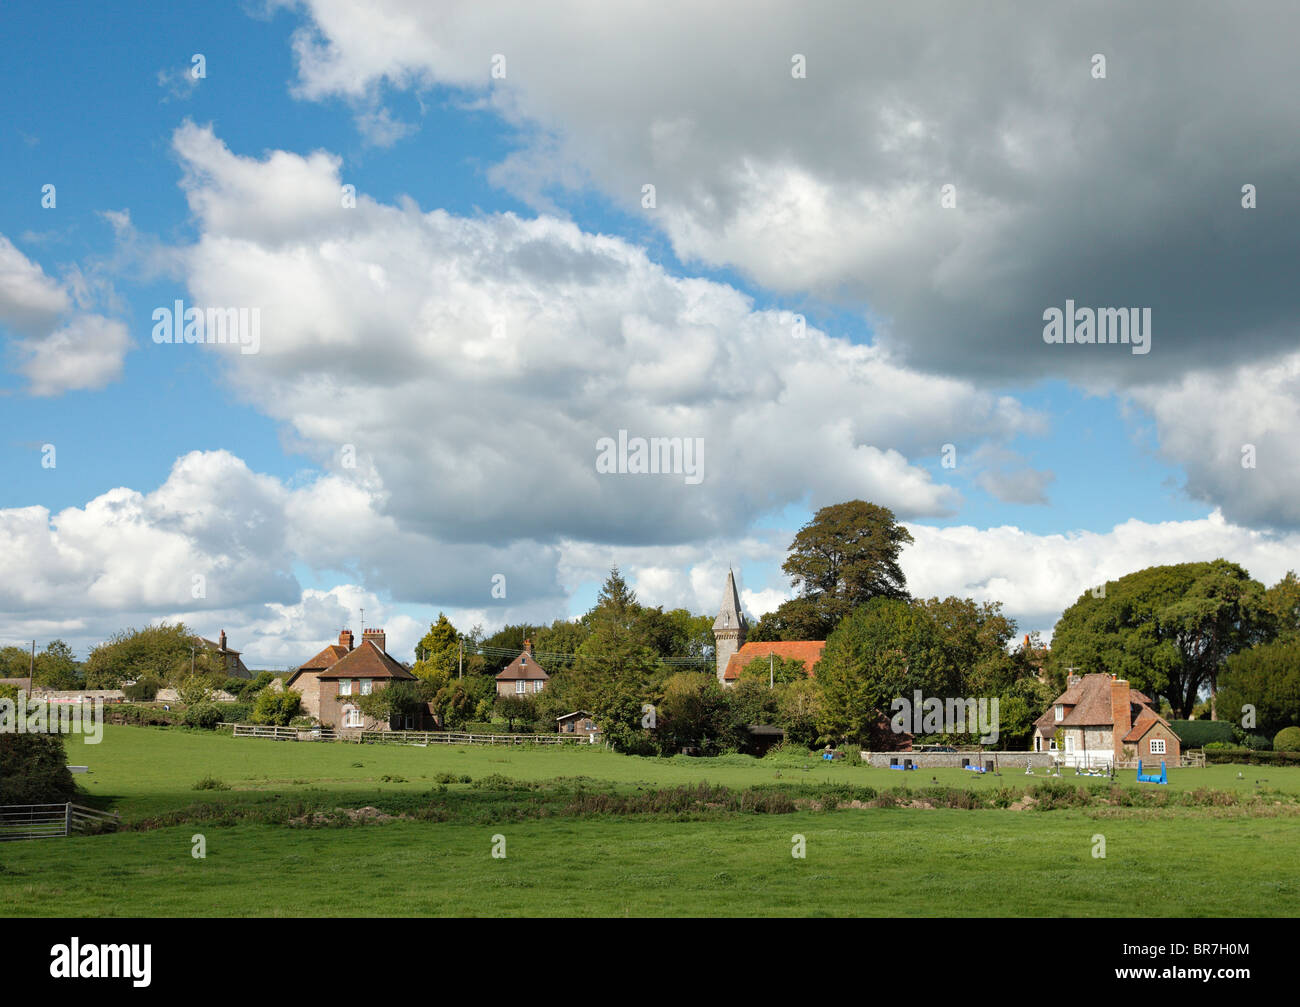 The Hamlet of South Stoke and St lawrence Church. - Stock Image